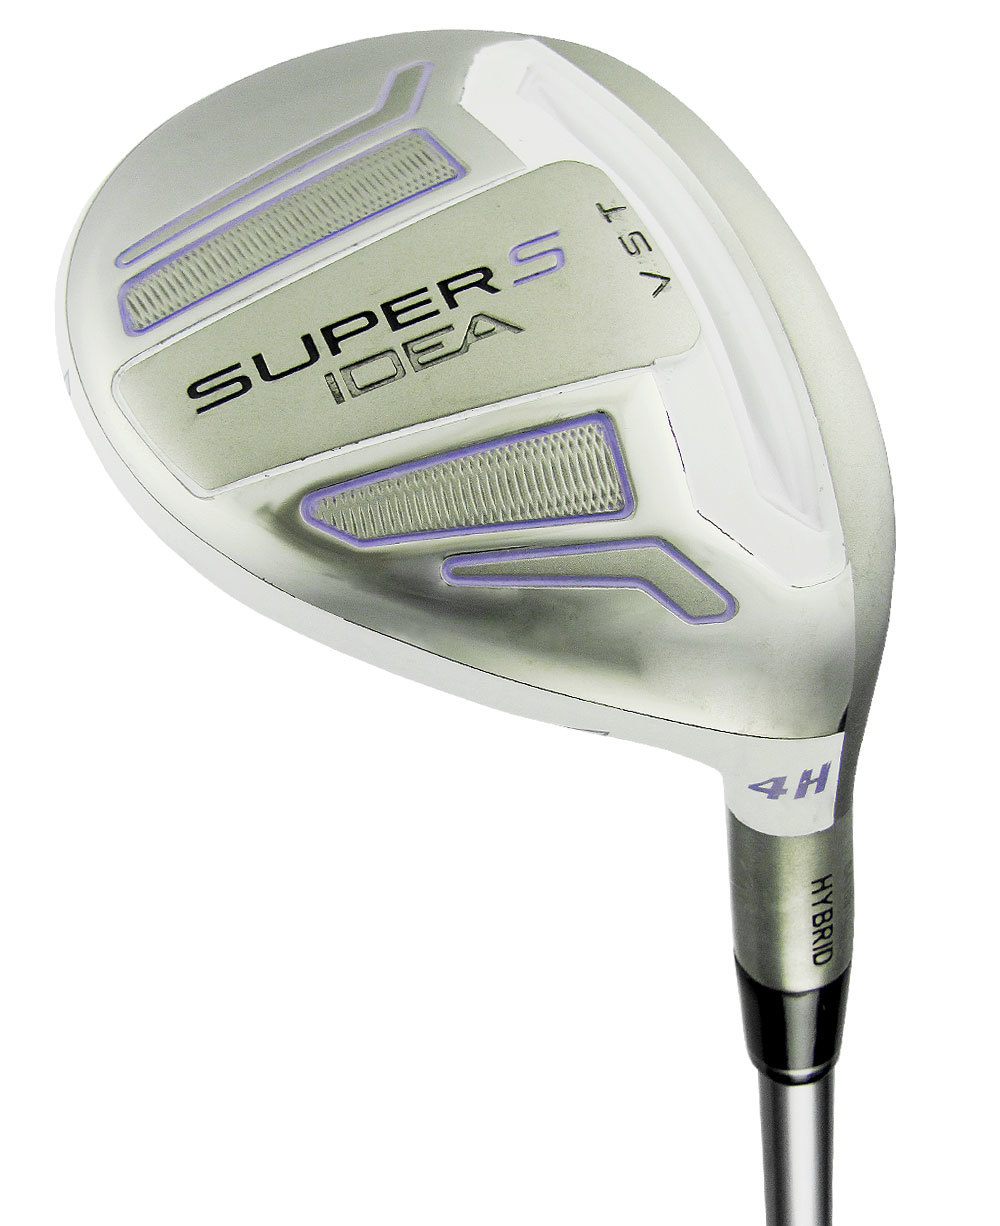 Adams super 9031: a hybrid for far better players